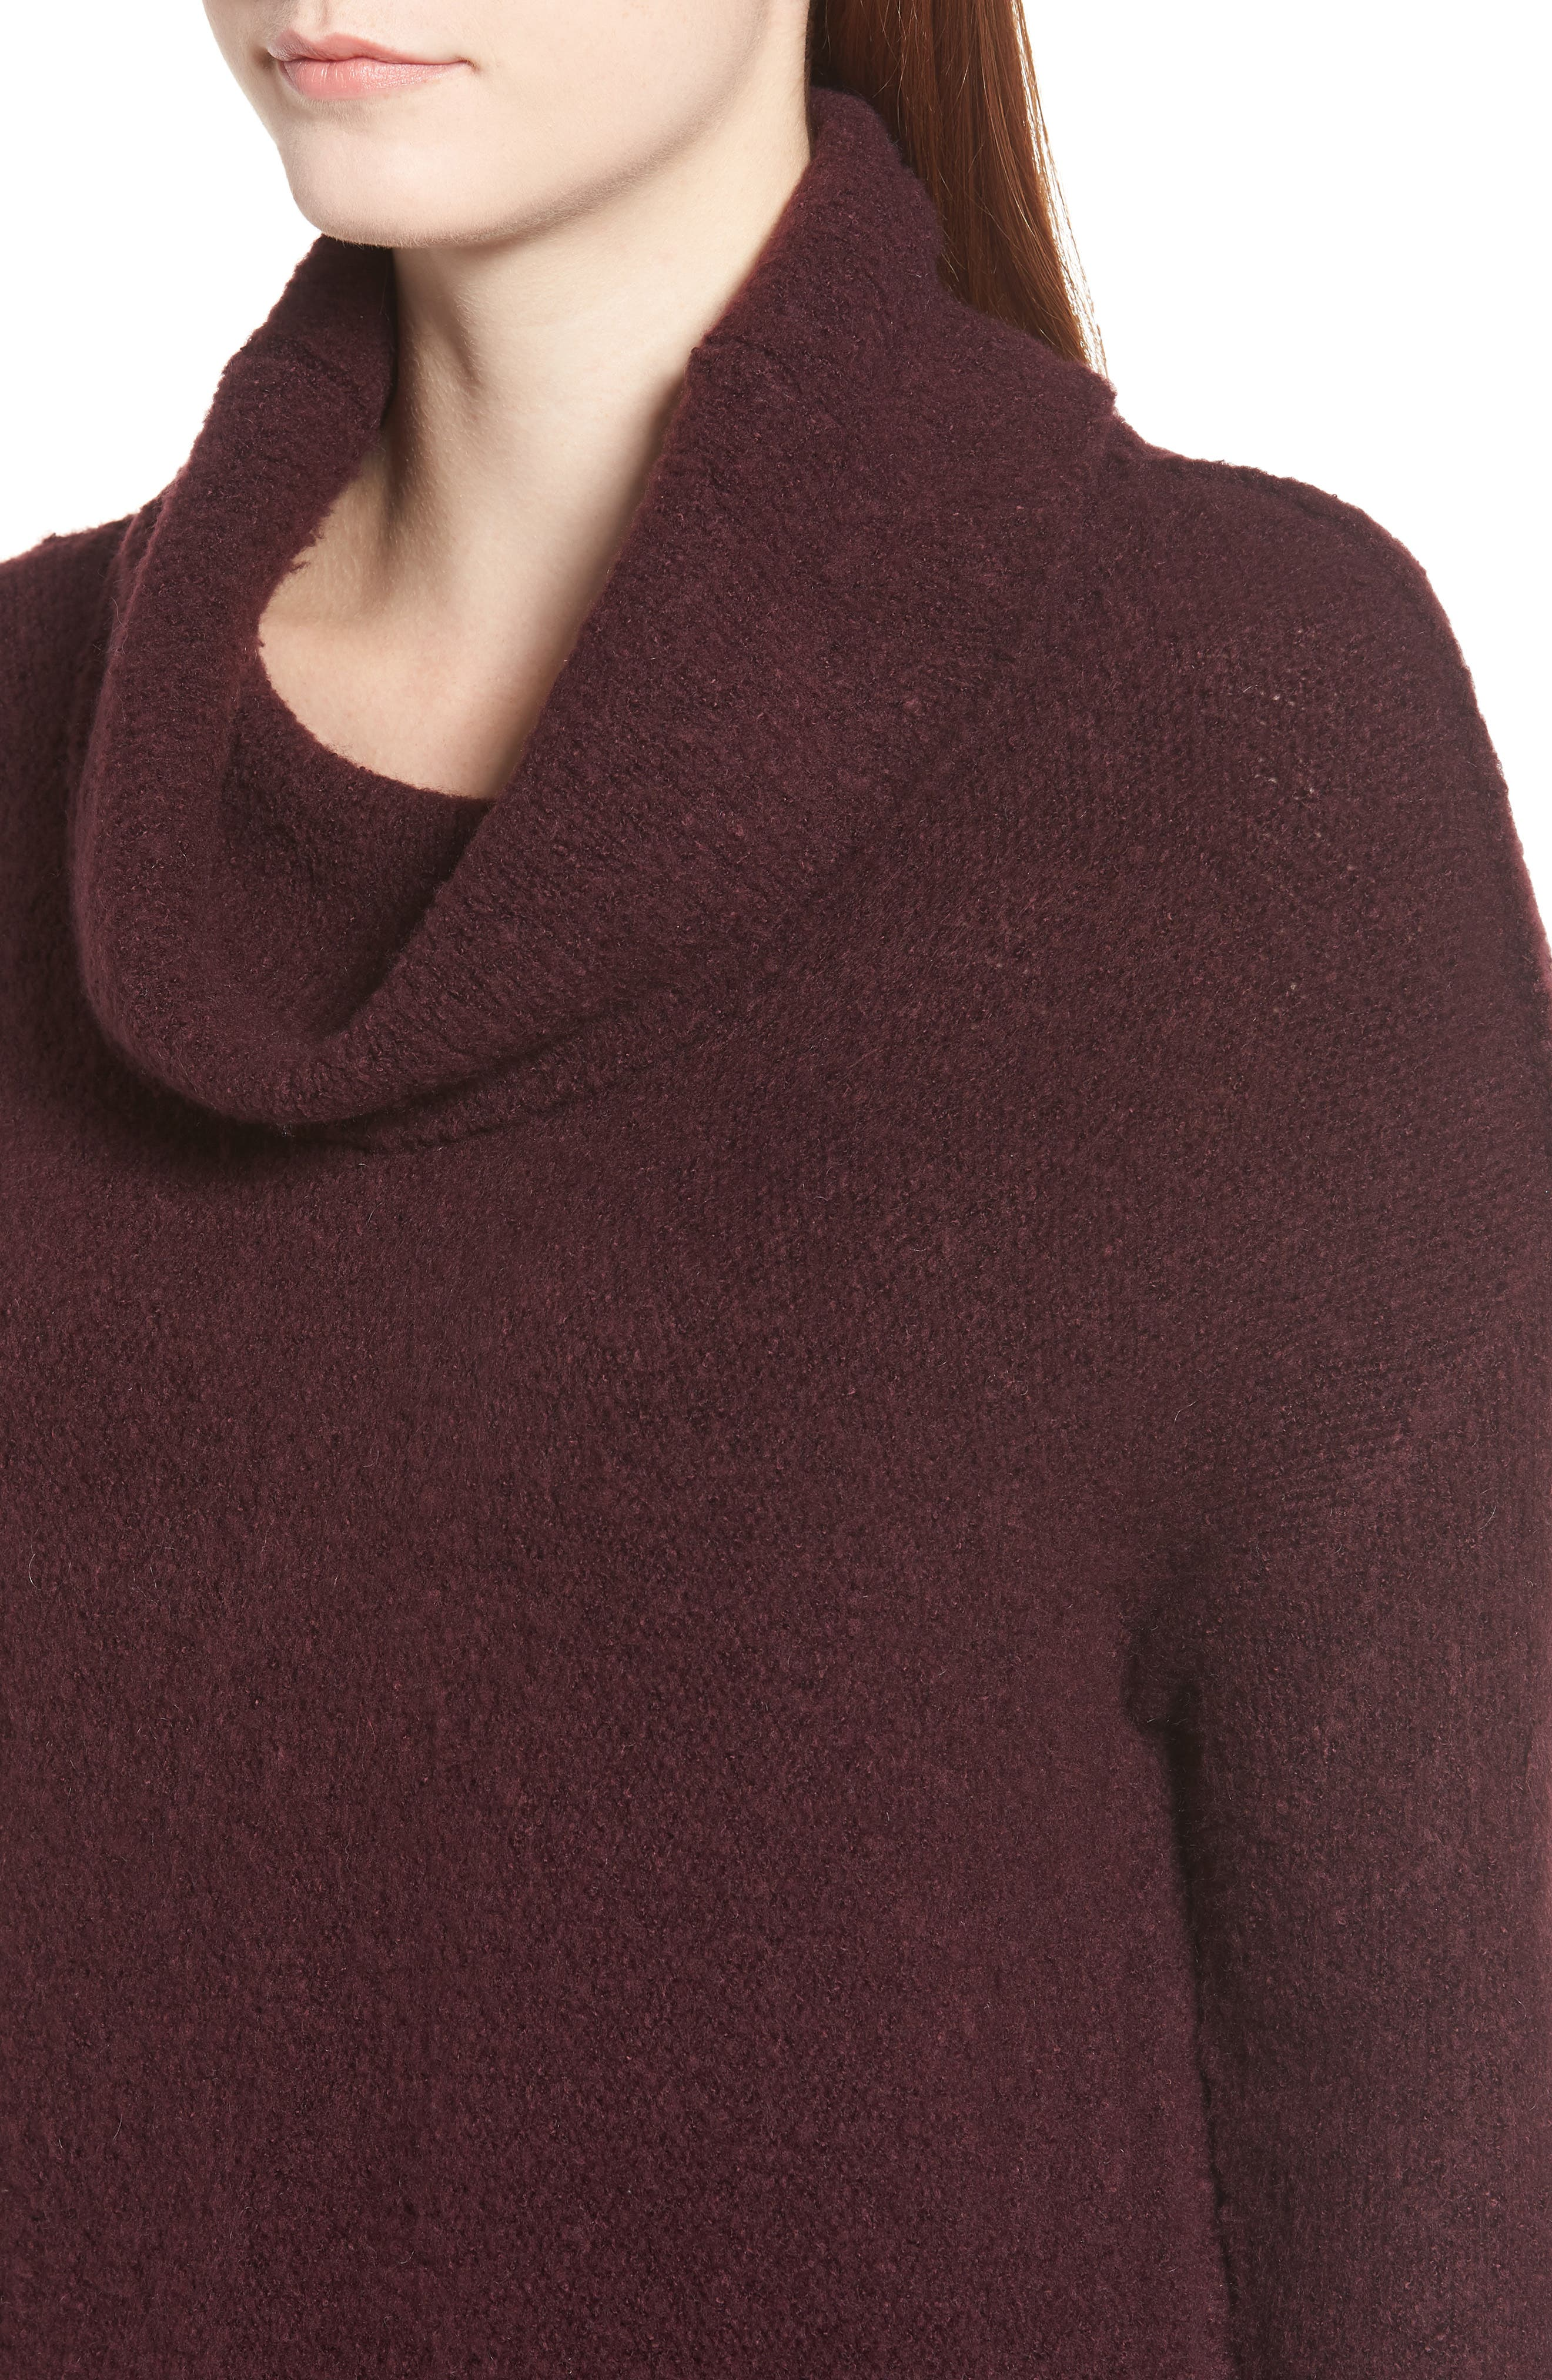 Tunic Sweater,                             Alternate thumbnail 4, color,                             BURGUNDY FIG